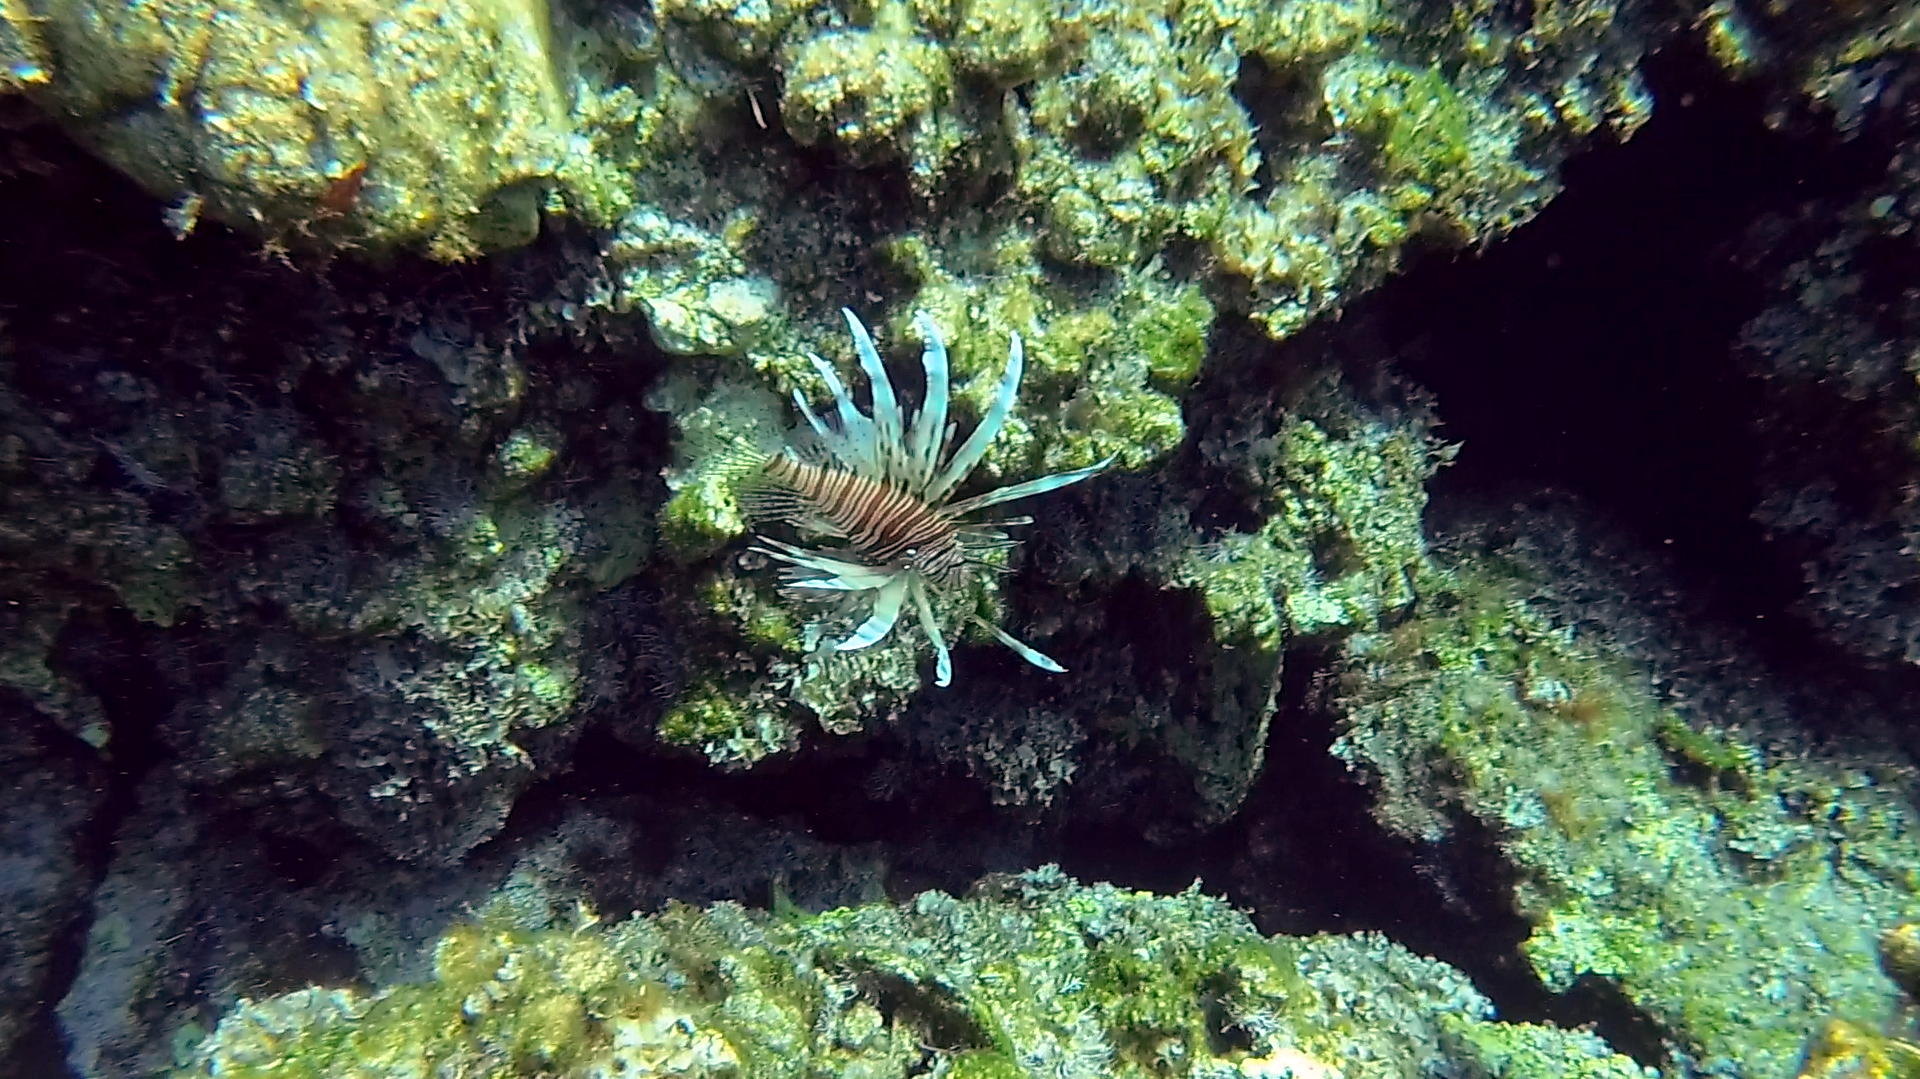 Lionfish in Falasarna, Crete